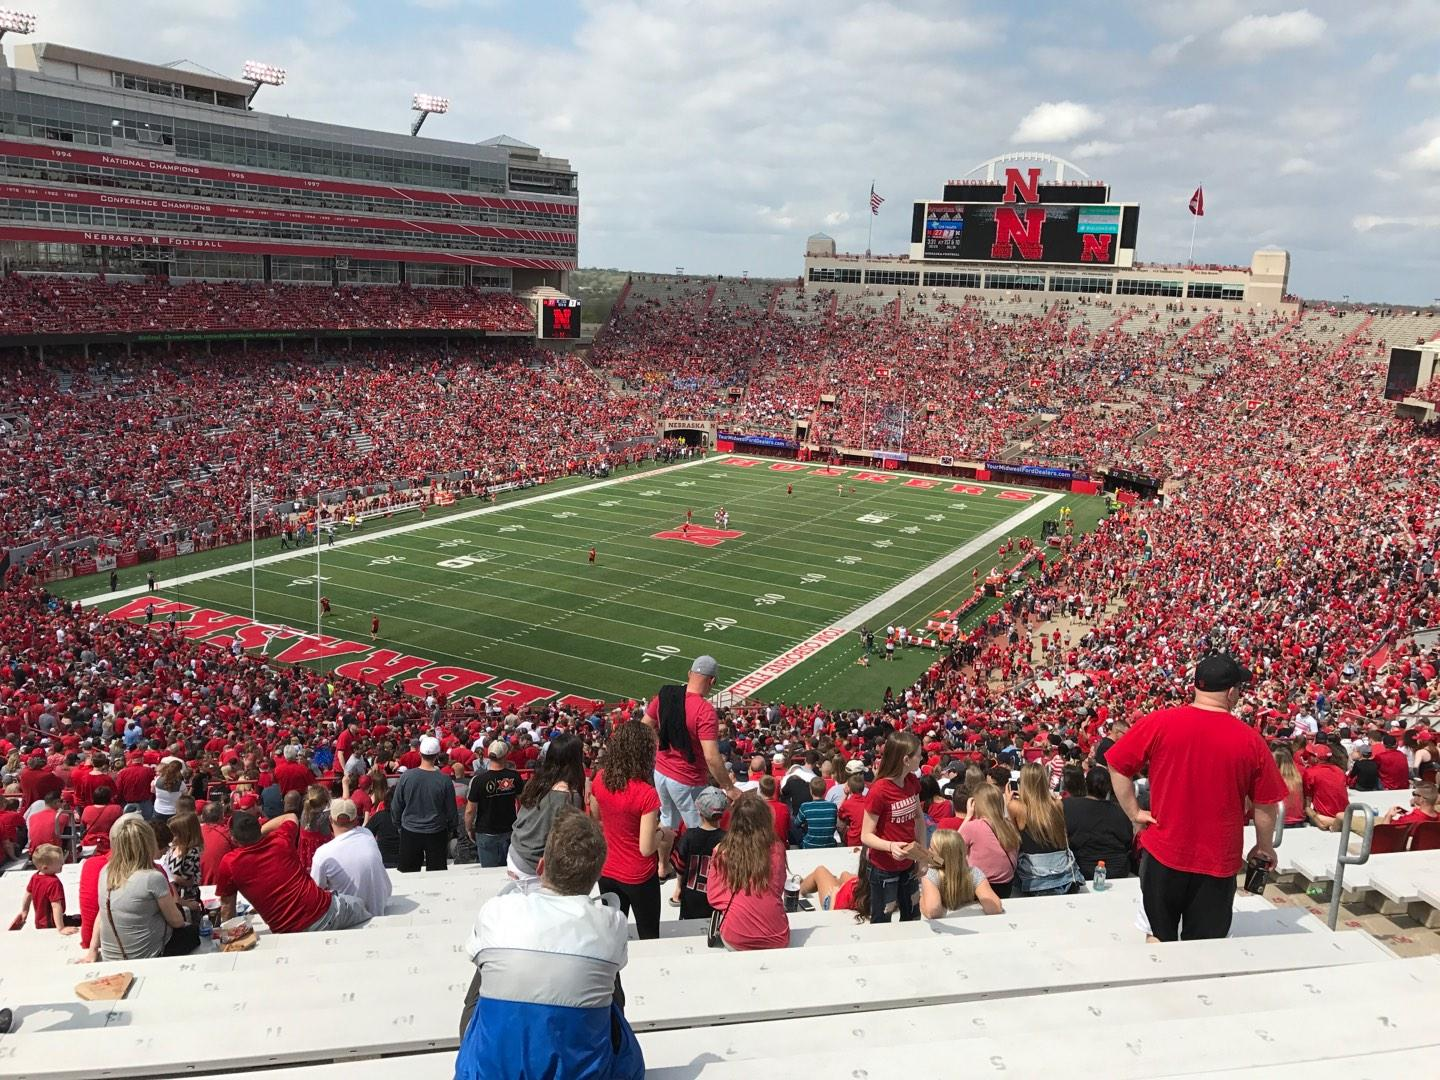 Memorial Stadium (Lincoln) Section 13 Row 98 Seat 6